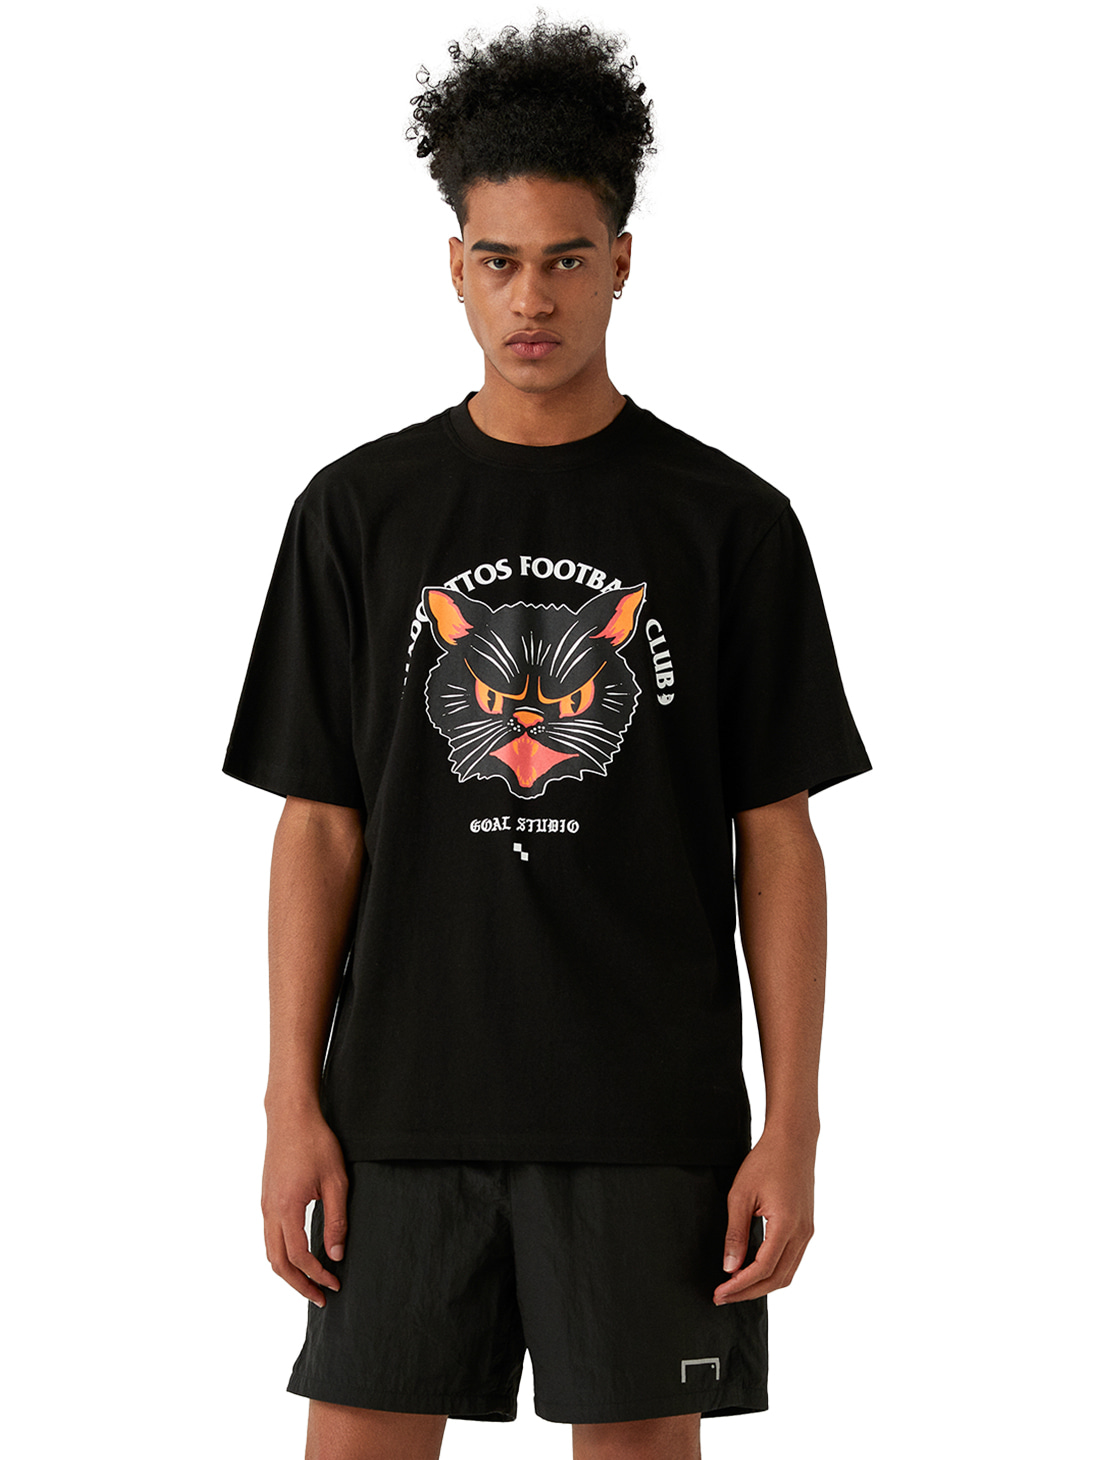 GOALSTUDIO MC FACE GRAPHIC TEE - BLACK